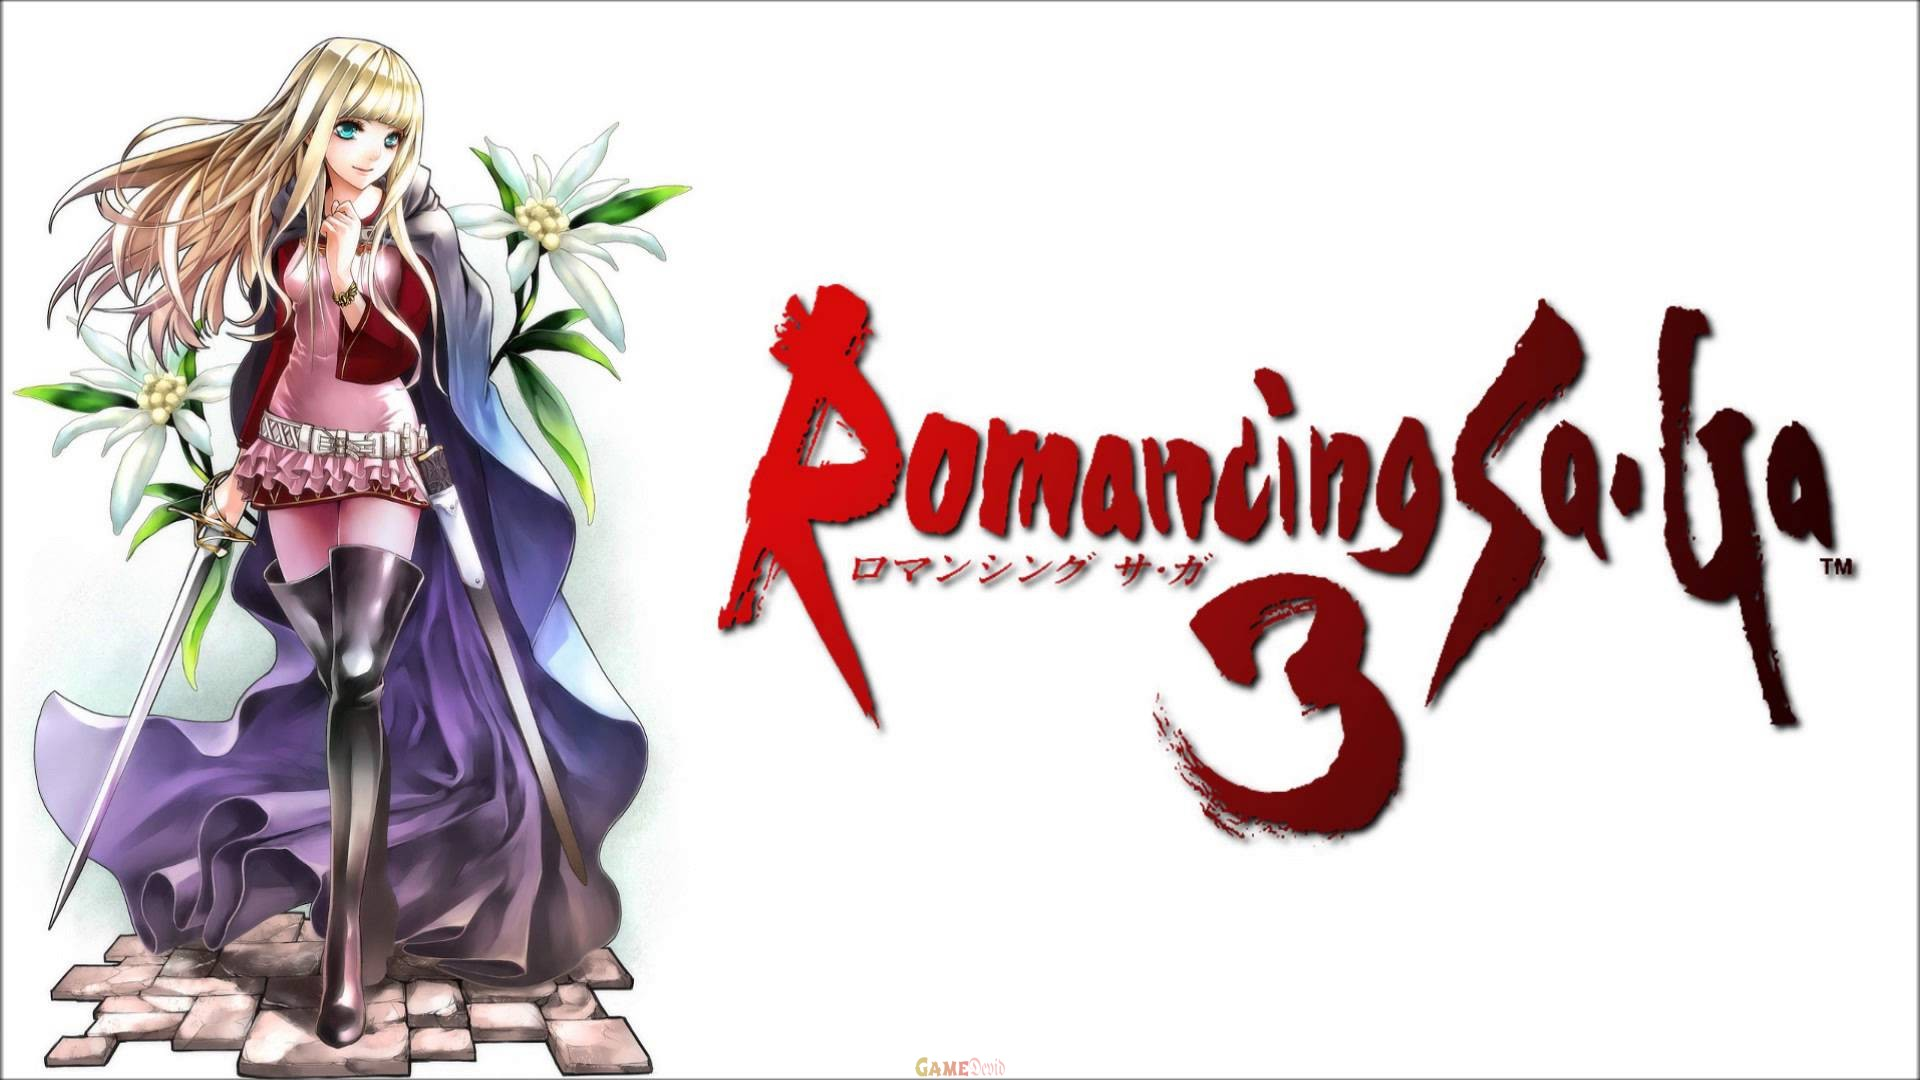 Romancing SaGa 3 PS4 Game Complete Download Now